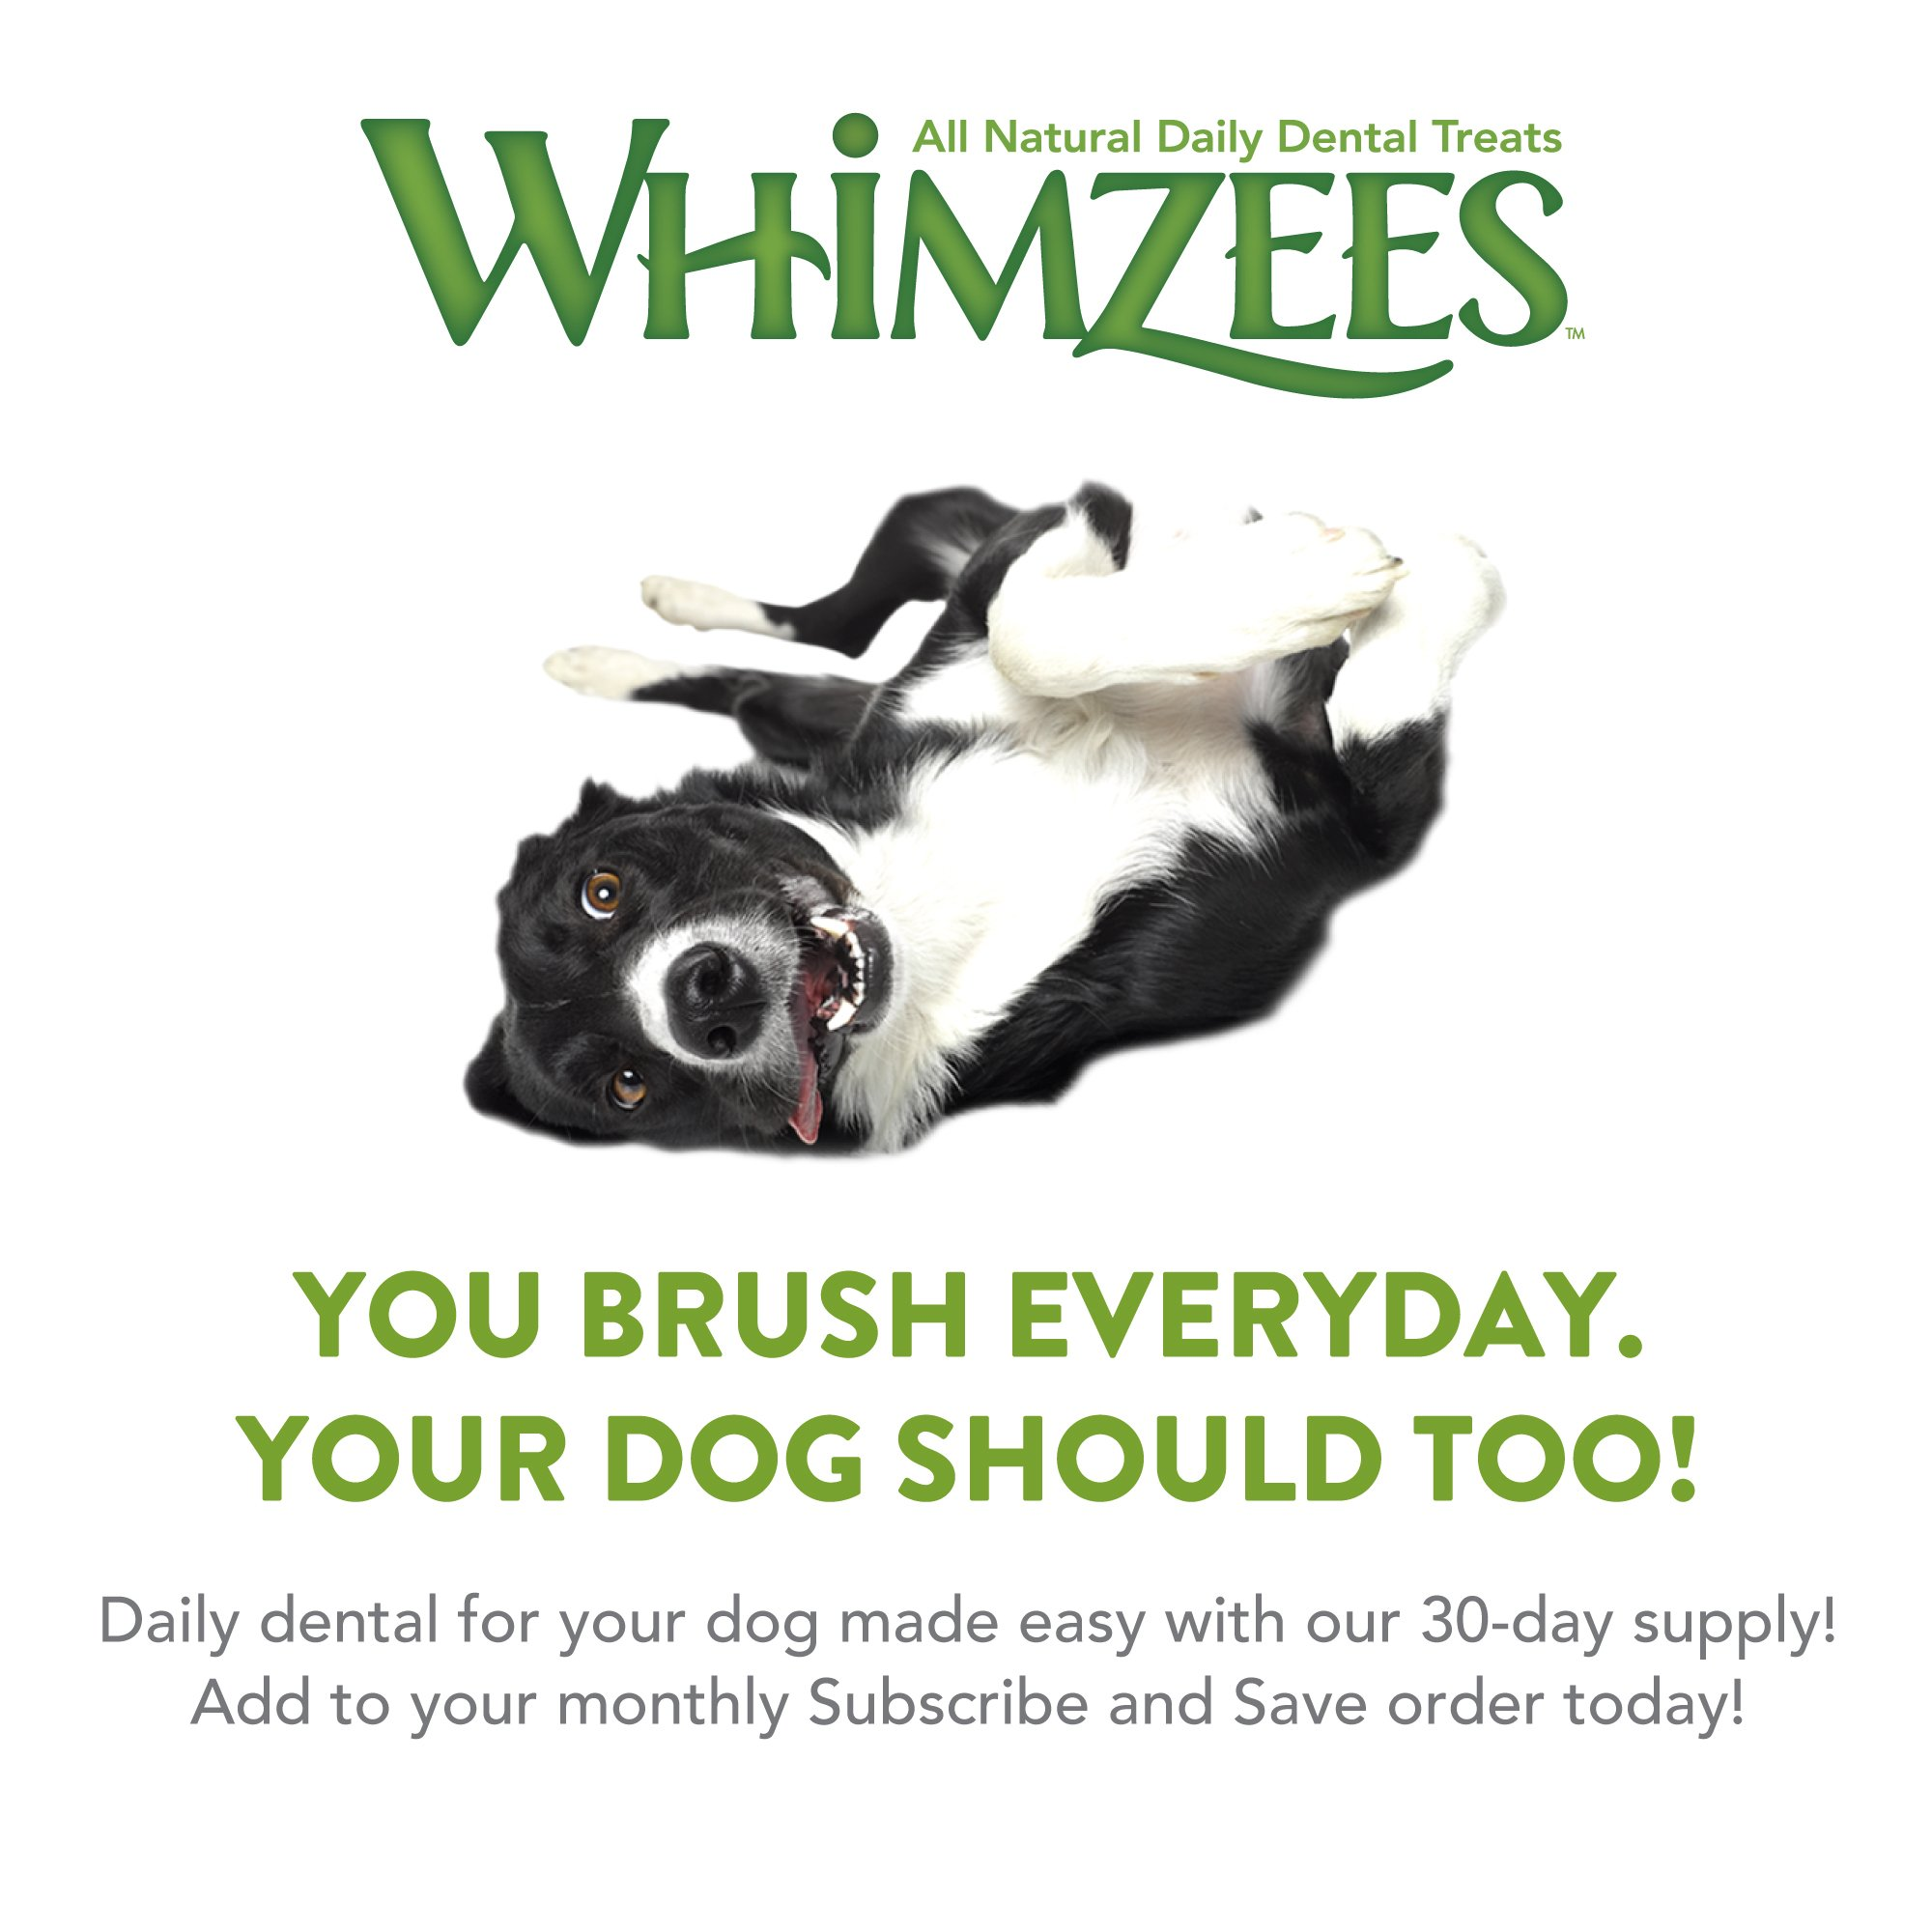 Whimzees 30 Day Pack Dog Dental Treats, Large Brushzees, Pack Of 30 by Whimzees (Image #4)